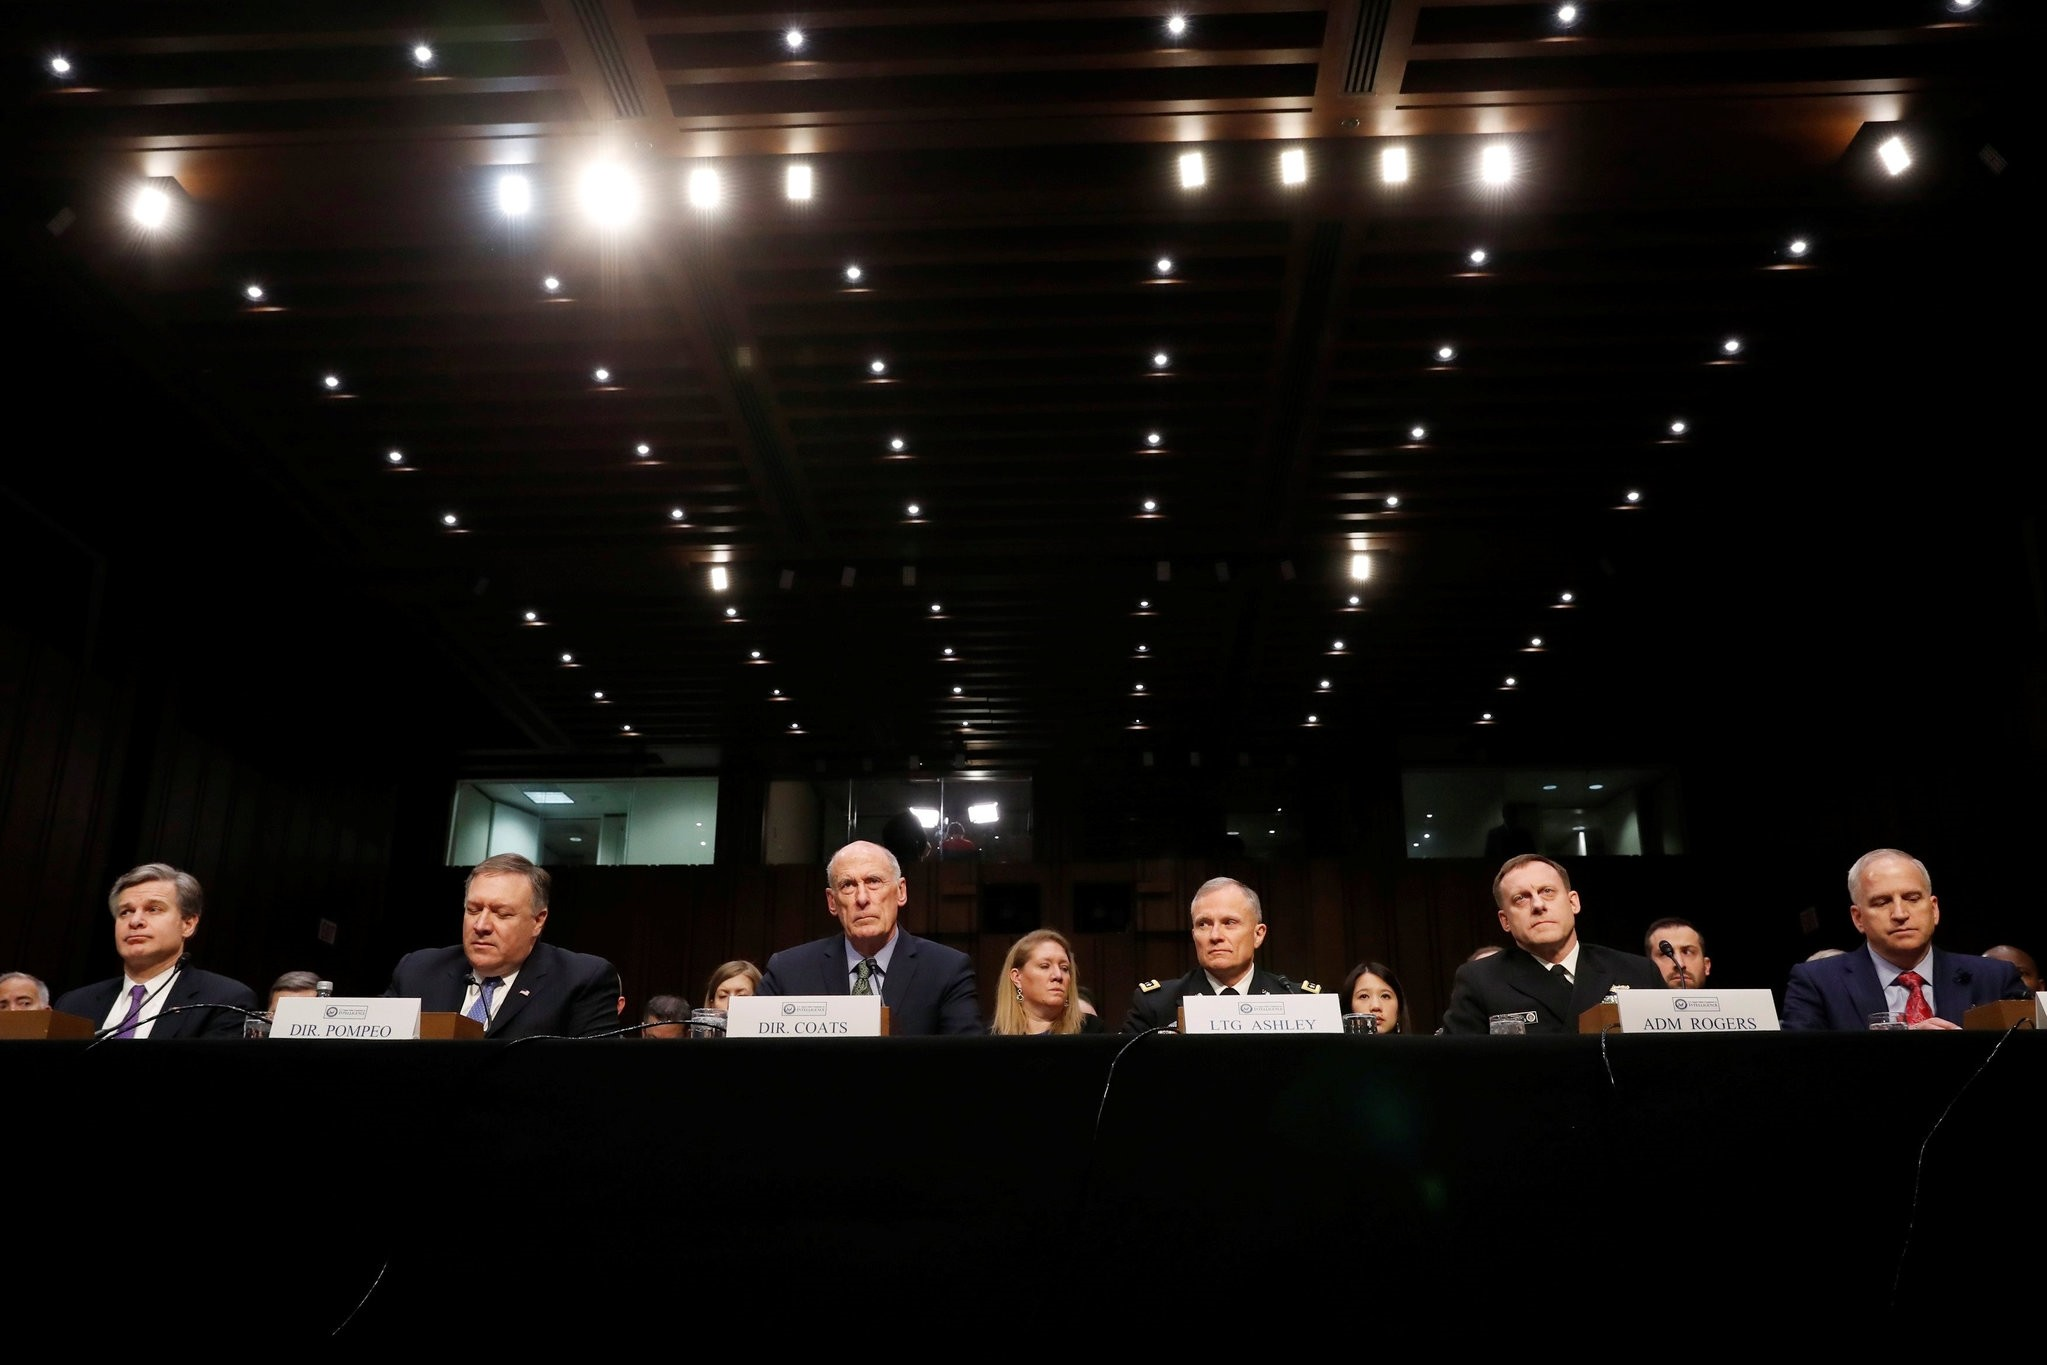 Director of National Intelligence Dan Coats (3L) testifies on worldwide threats during a Senate Intelligence Committee hearing on Capitol Hill in Washington, DC, February 13, 2018